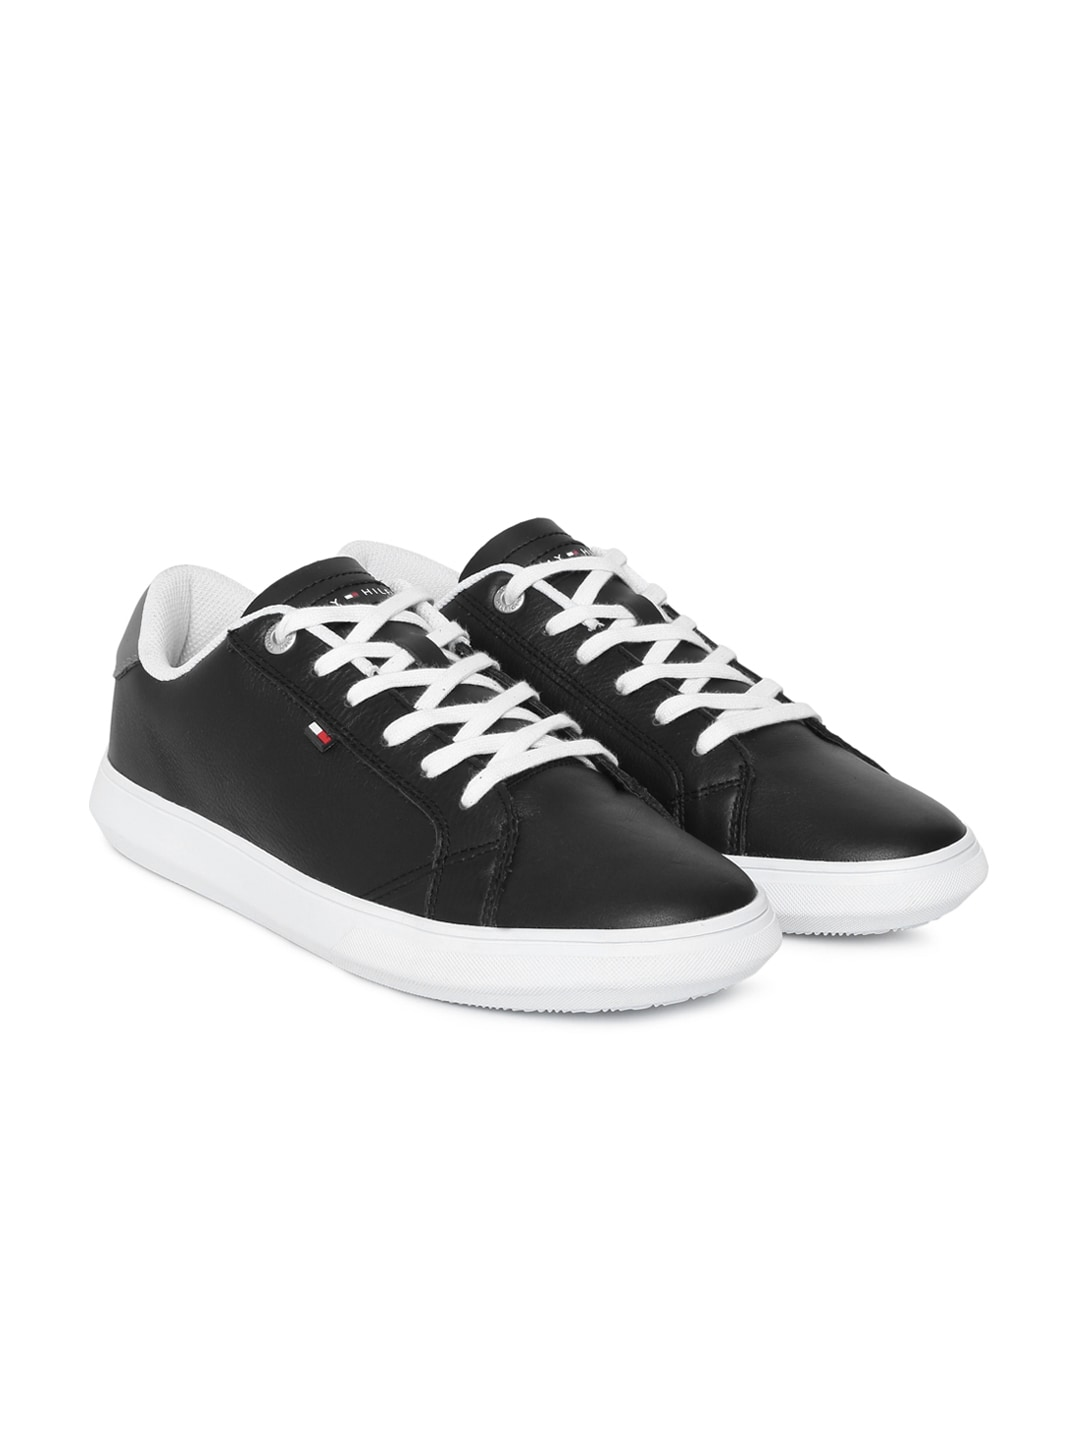 6e6adc784323 Tommy Hilfiger Shoes - Buy Tommy Hilfiger Shoes Online - Myntra